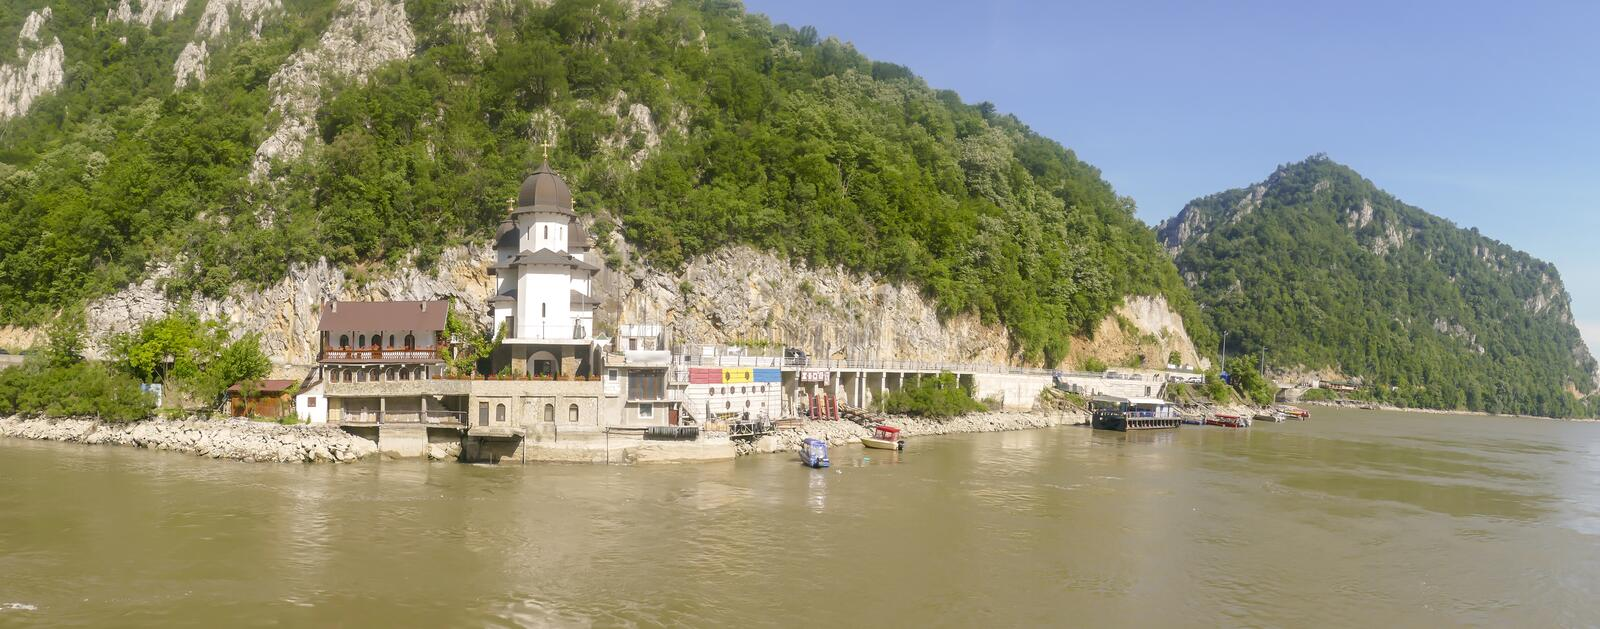 Waterfront Mraconia Monastery  in Iron Gate. Waterfront Mraconia Monastery  on shores in the Iron Gate gorges on the Danube River between Serbia and Romania royalty free stock images